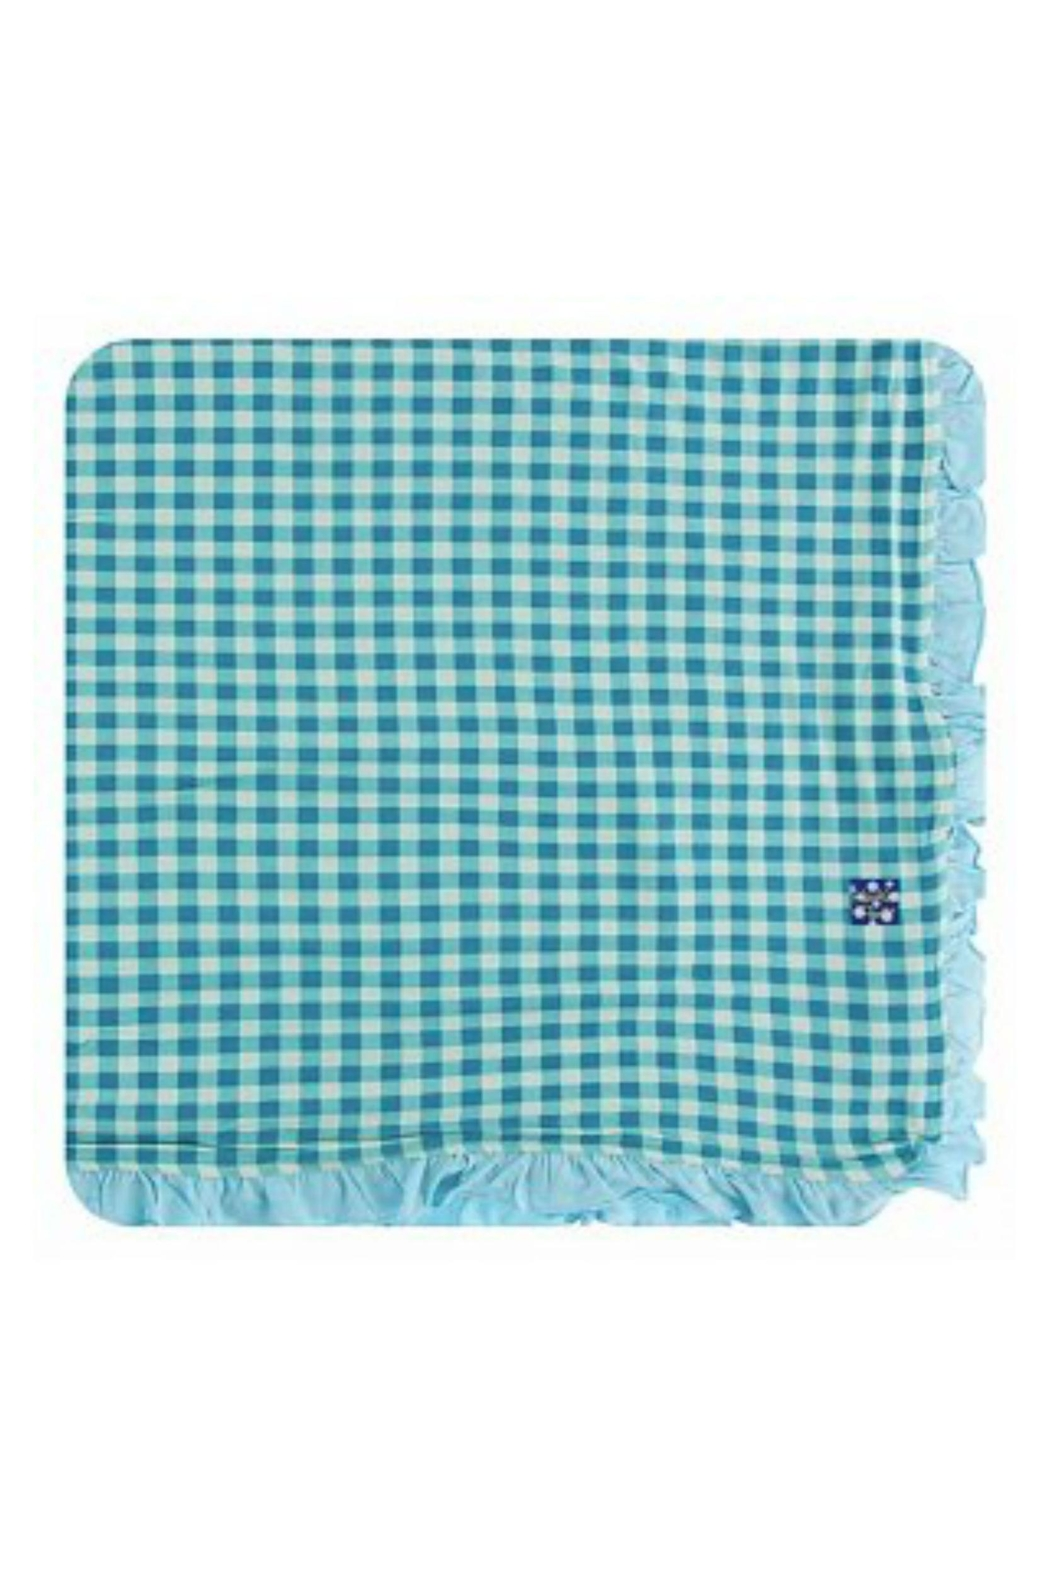 Kickee Pants Pistachio Gingham Toddler-Blanket - Main Image